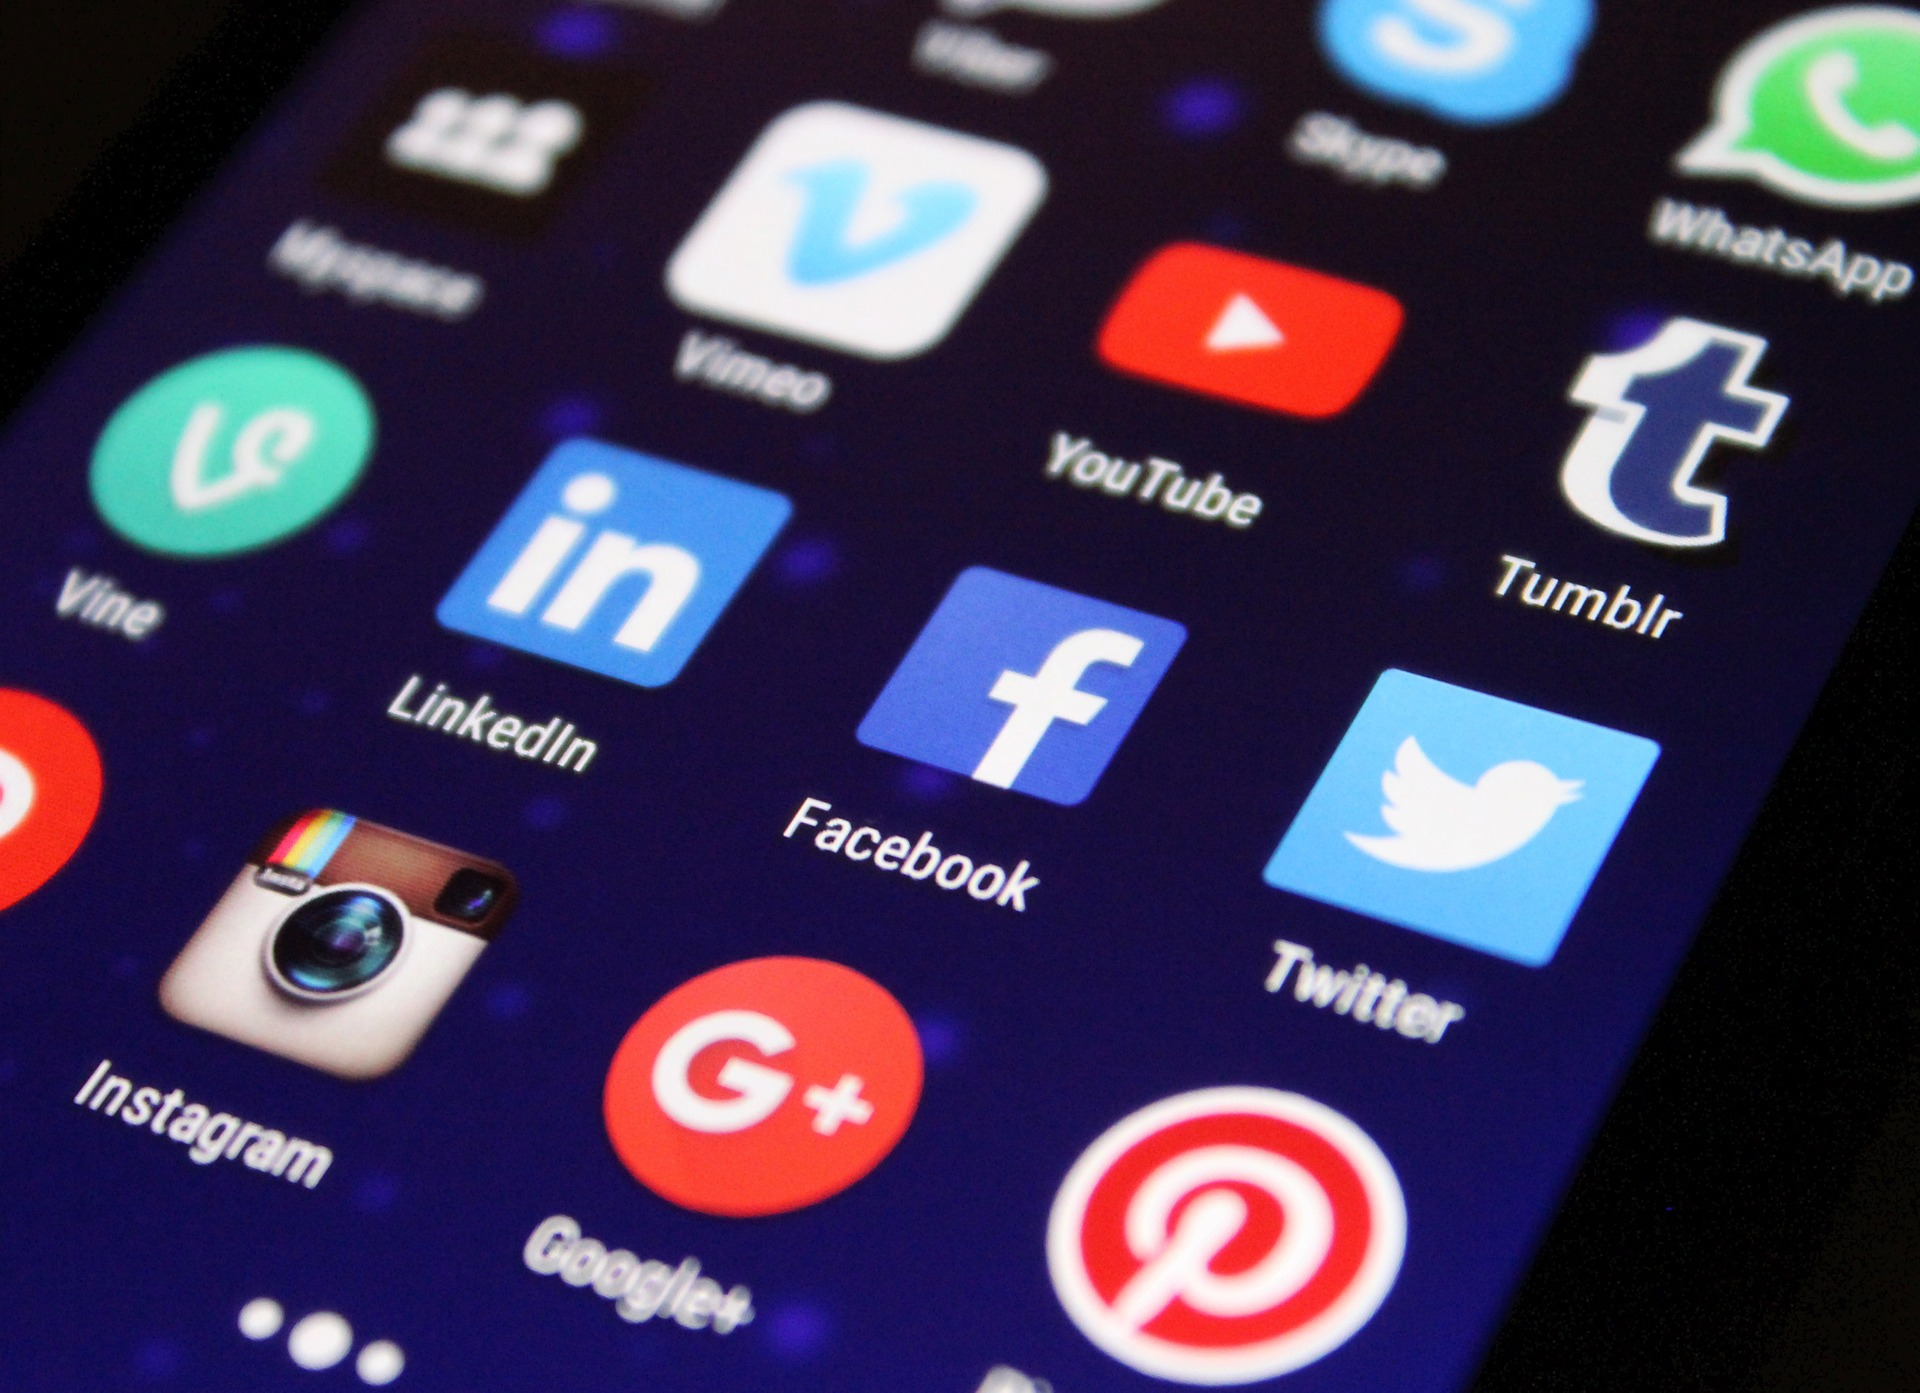 Stay connected with your customers via social media such as Facebook or Google+